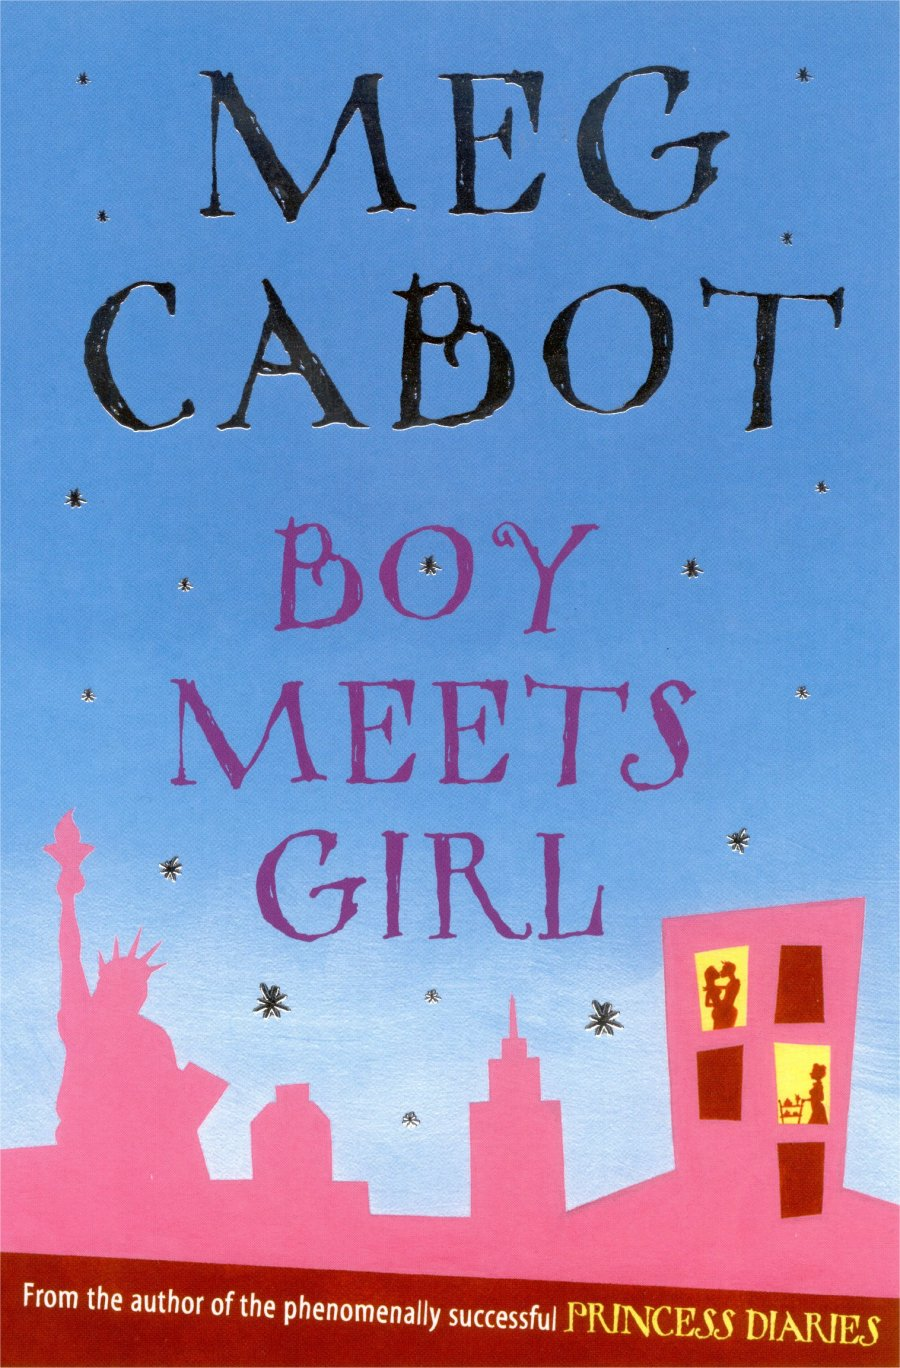 Boy Meets Girl by Meg Cabot Amazon | Goodreads